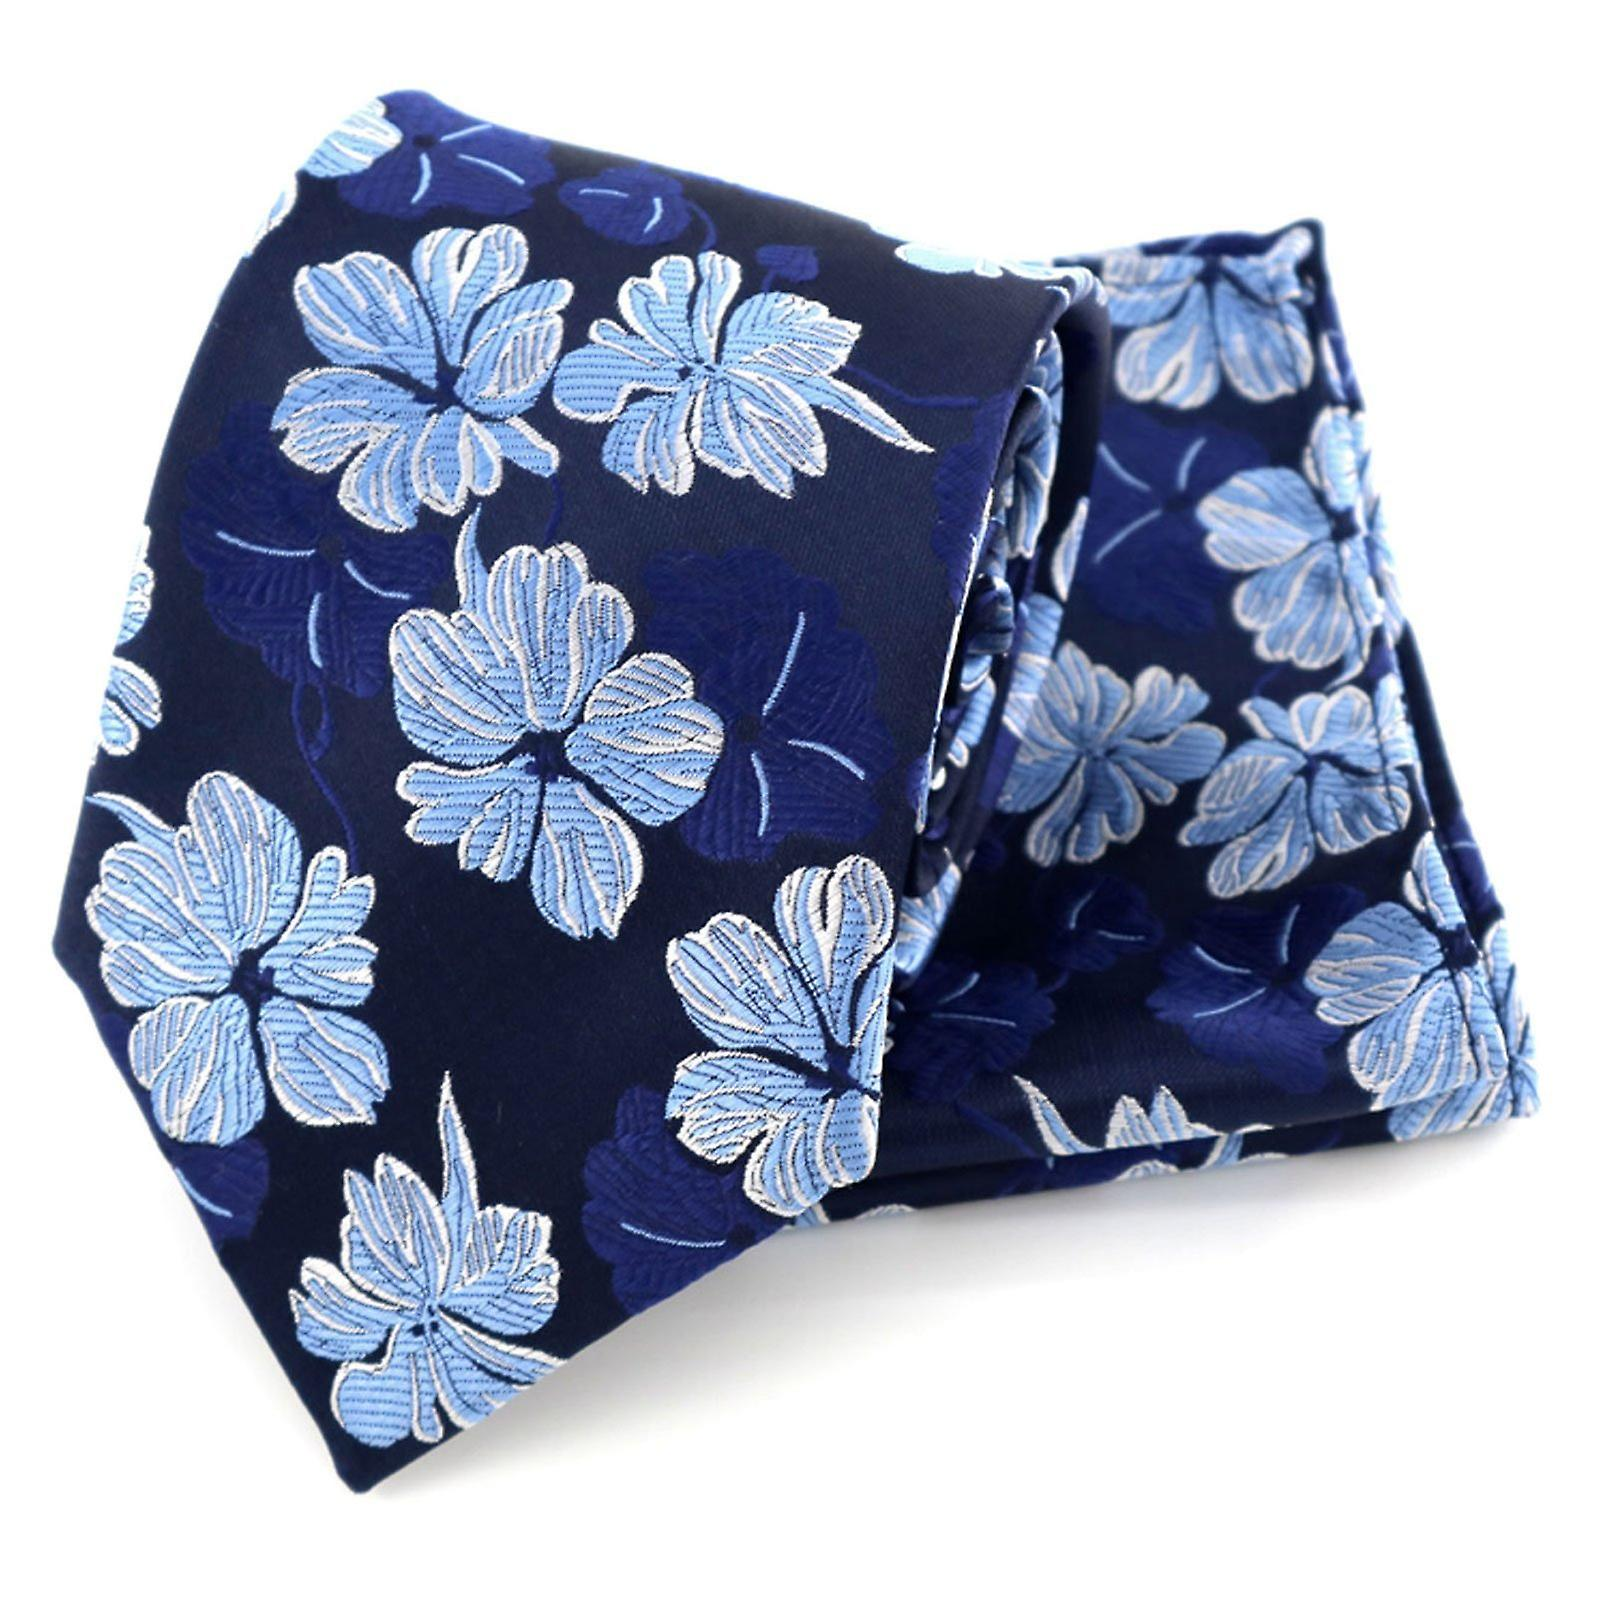 Baby & navy blue floral pattern tie & pocket square set